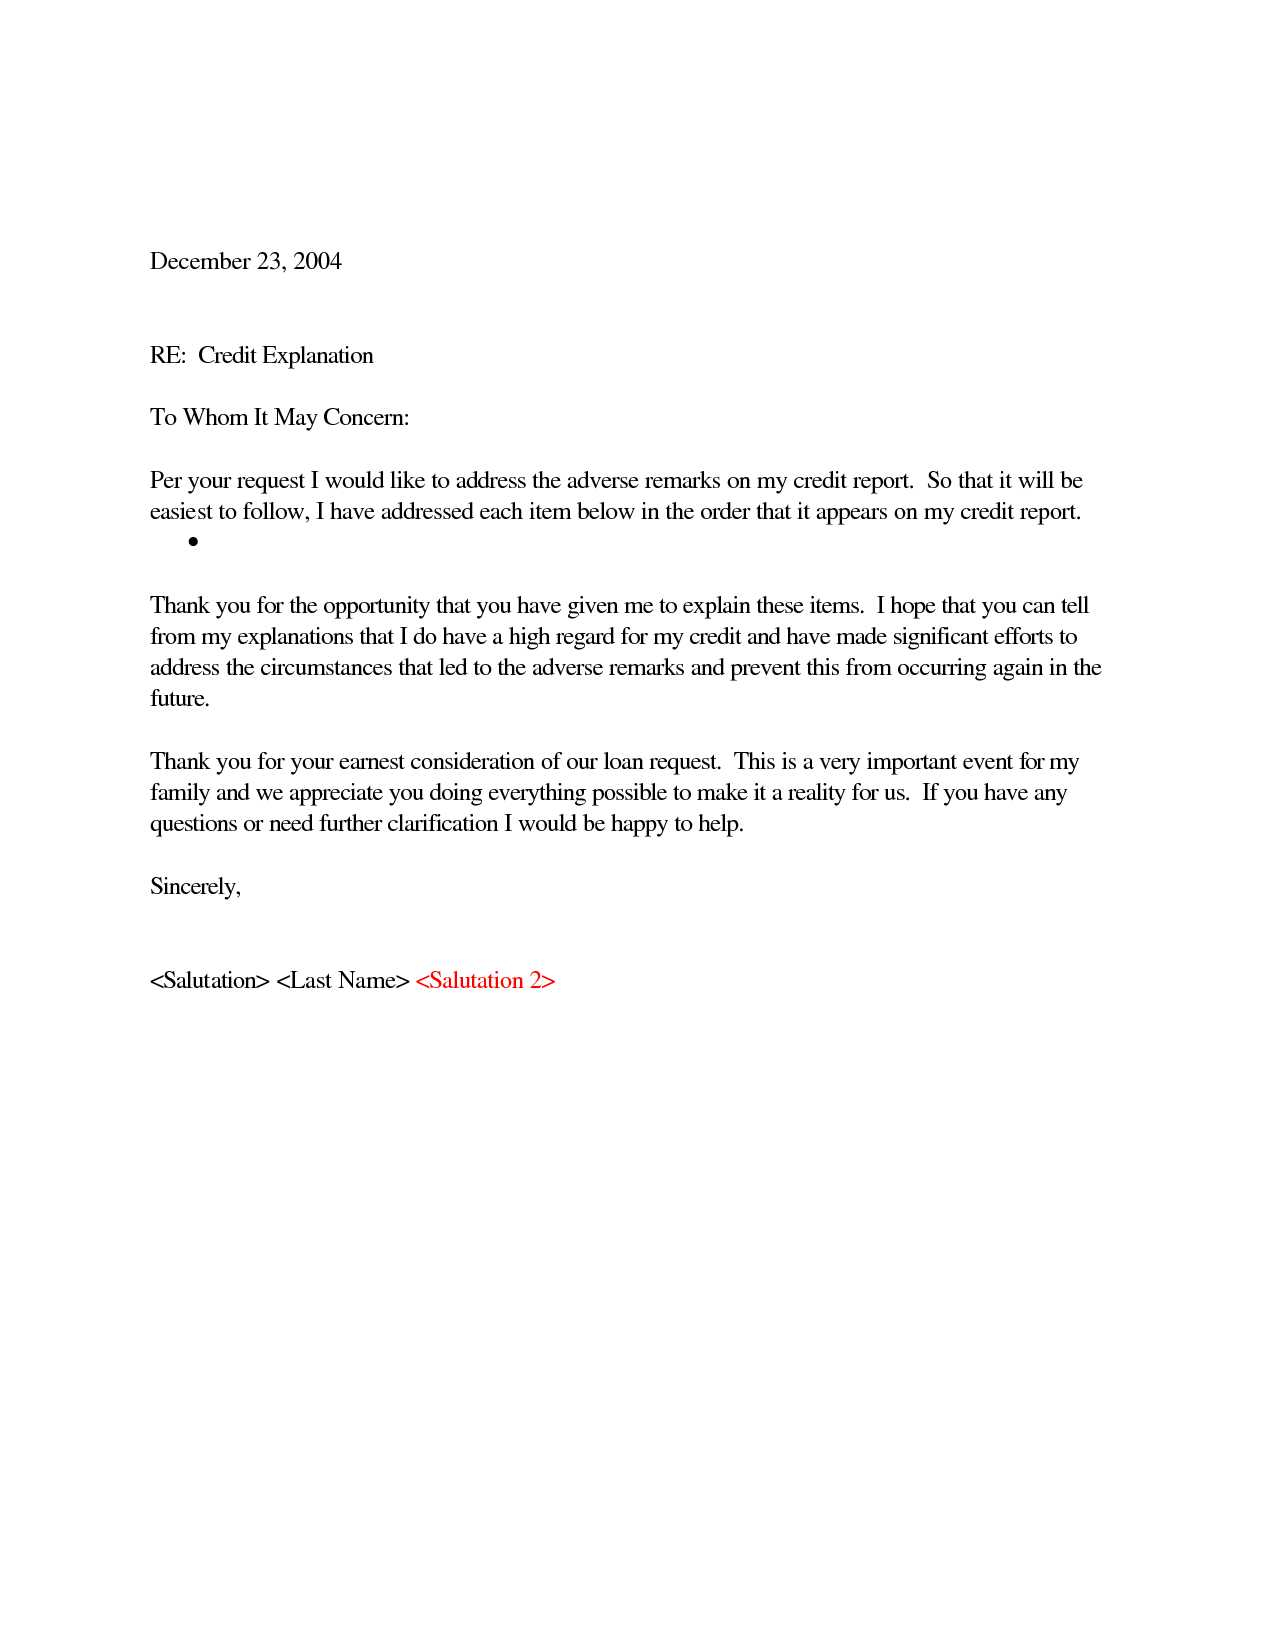 609 Dispute Letter Template - Sample Credit Report or How to Write A Credit Dispute Letter that